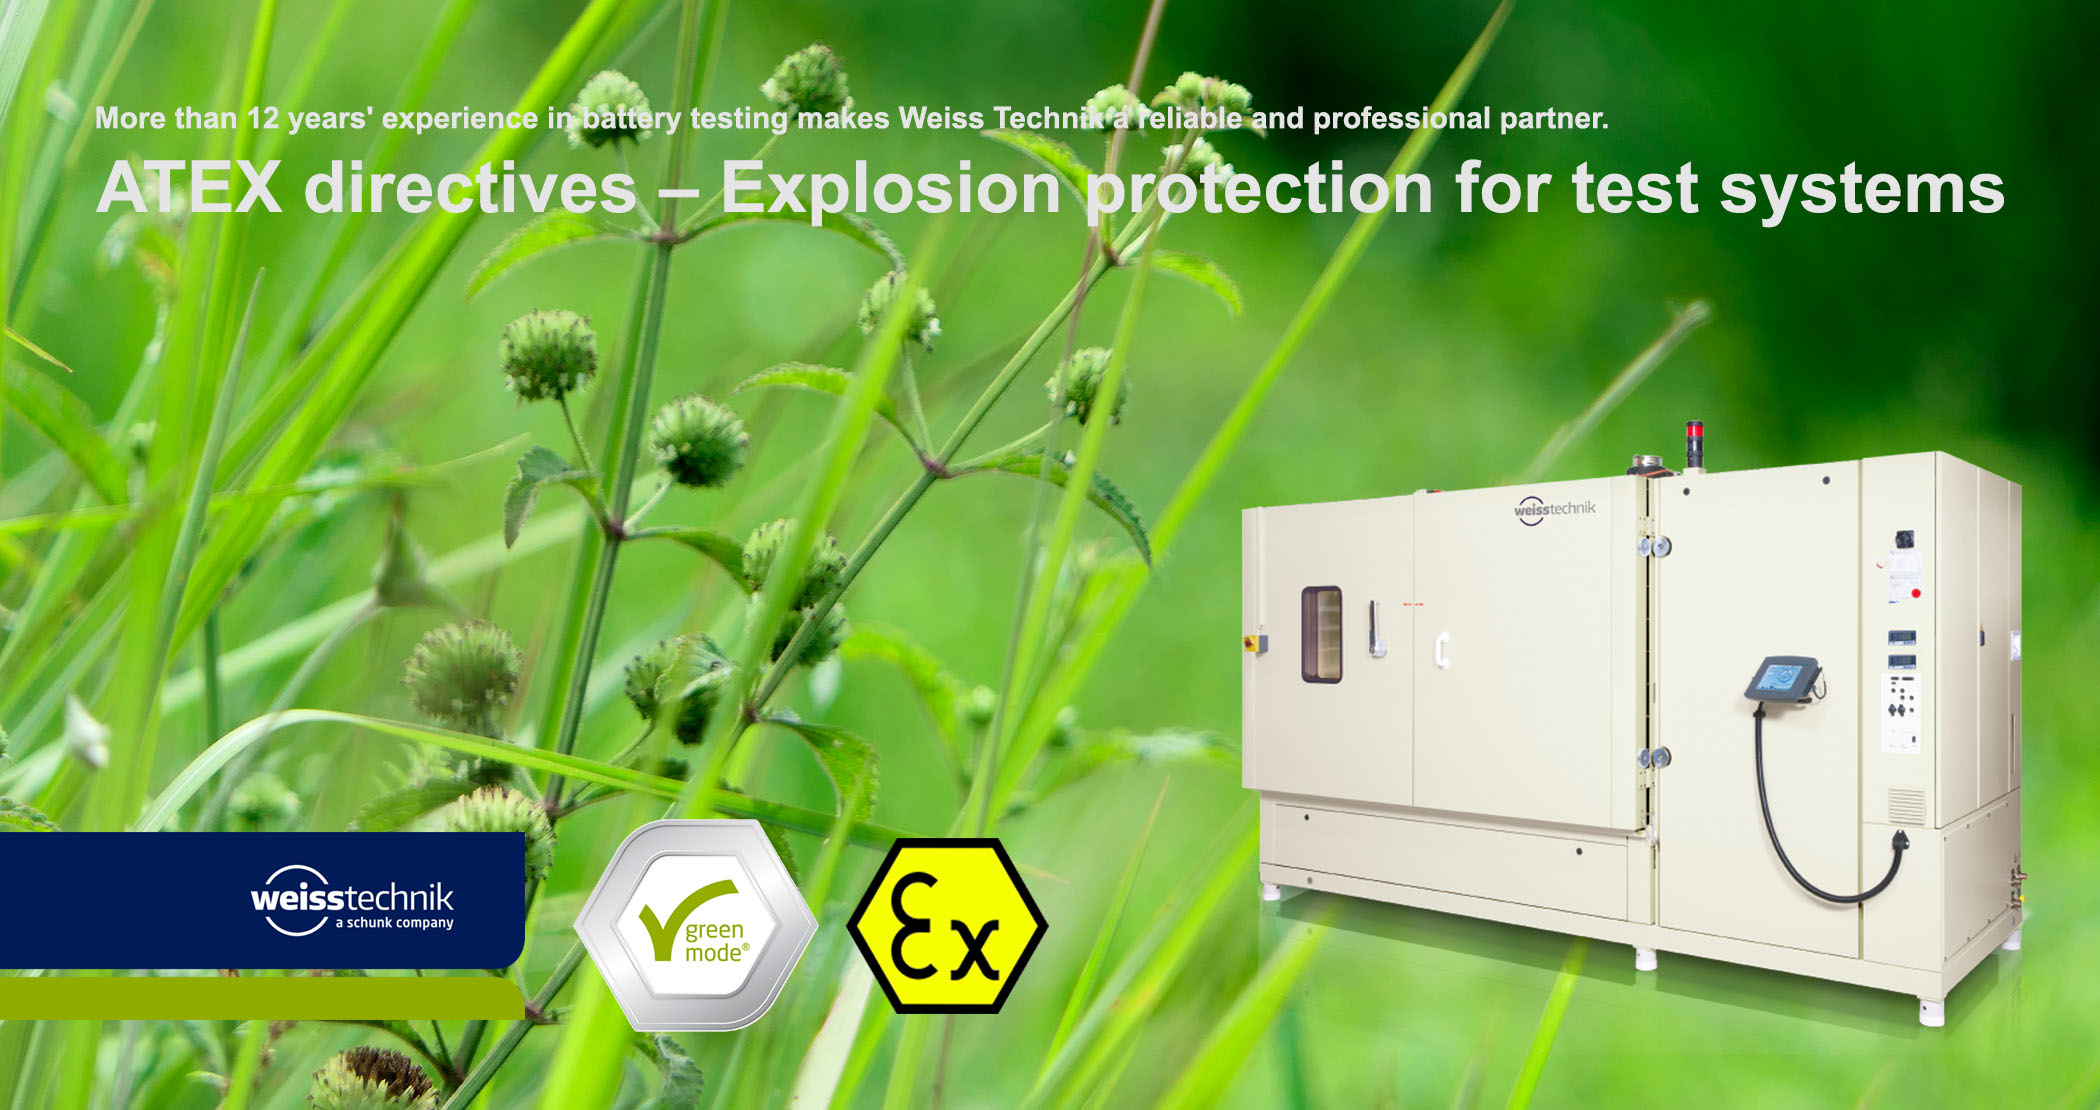 ATEX directives_Explosion protection_Battery testing